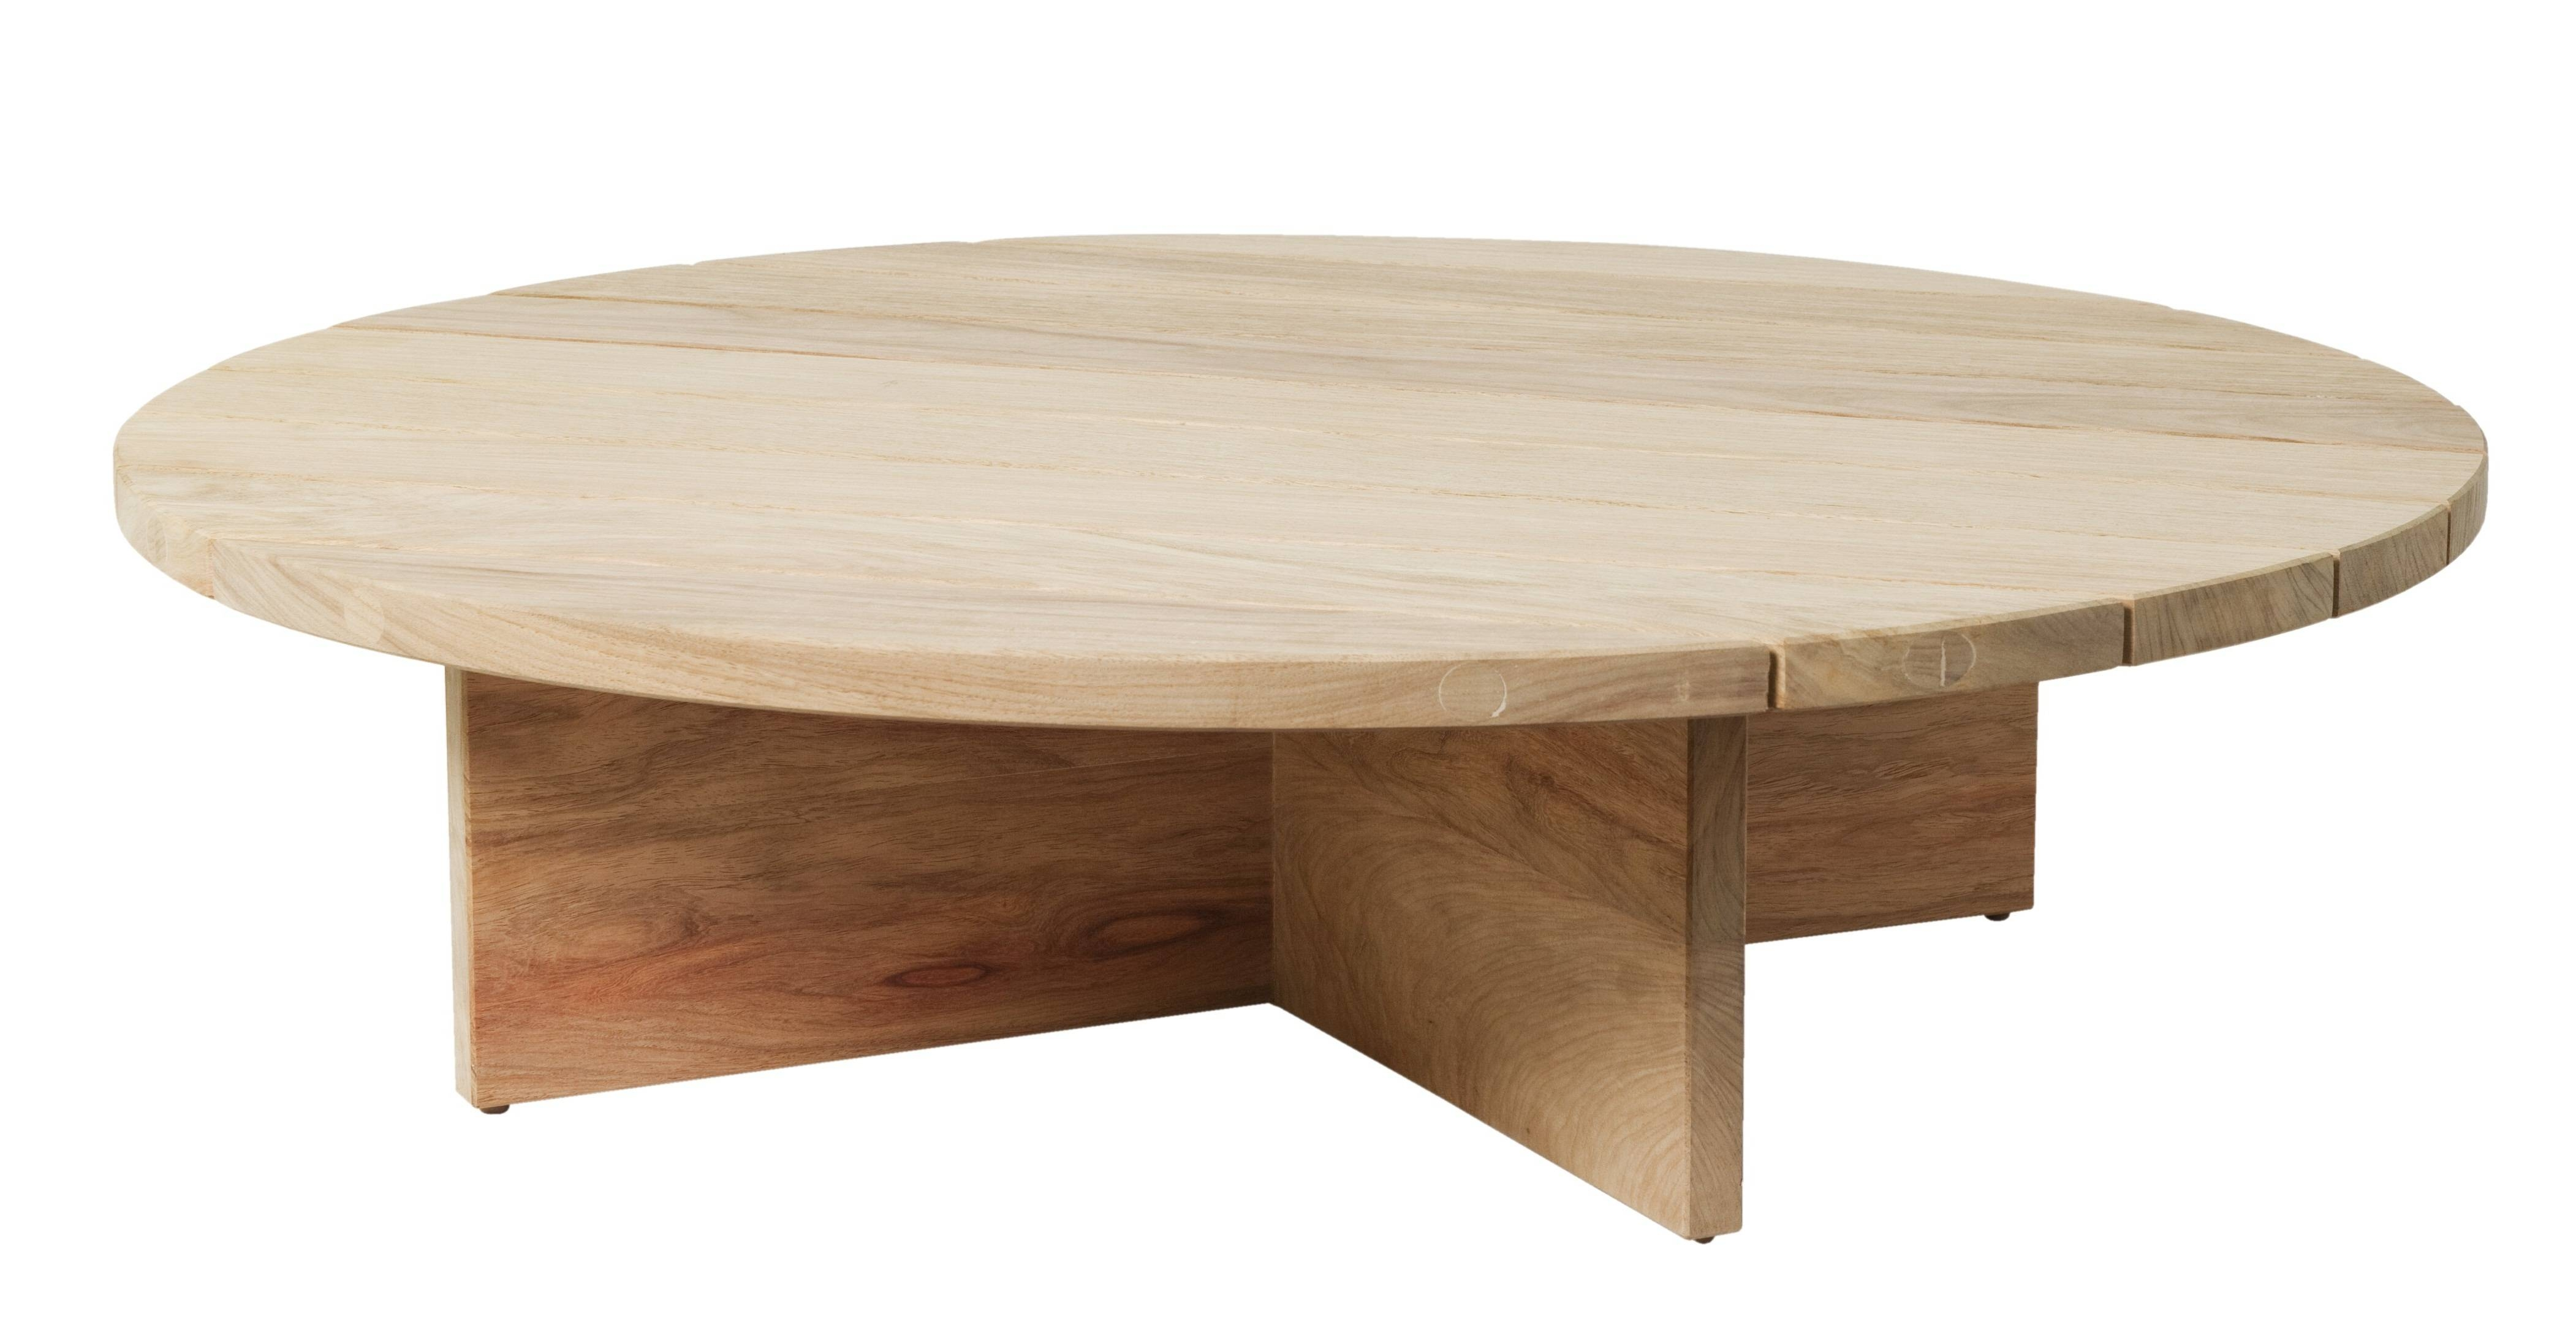 Timber Round Wooden Coffee Table Simple Design – Side Tables For pertaining to Chunky Wood Coffee Tables (Image 22 of 30)